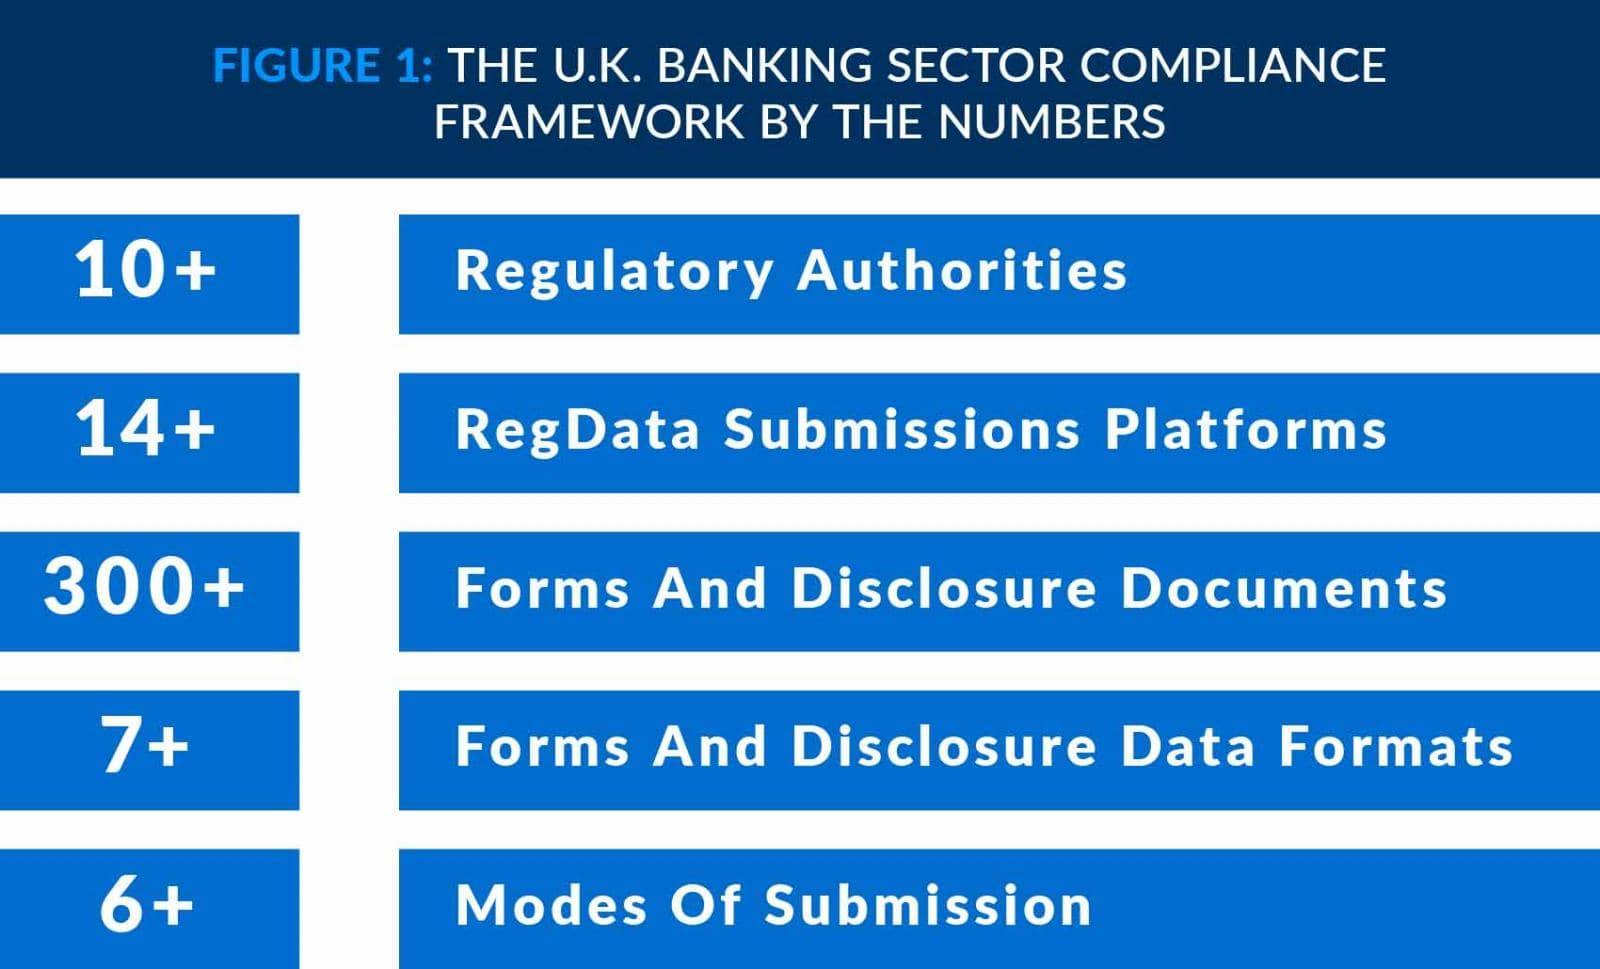 UK Banking Sector Compliance Framework By The Numbers